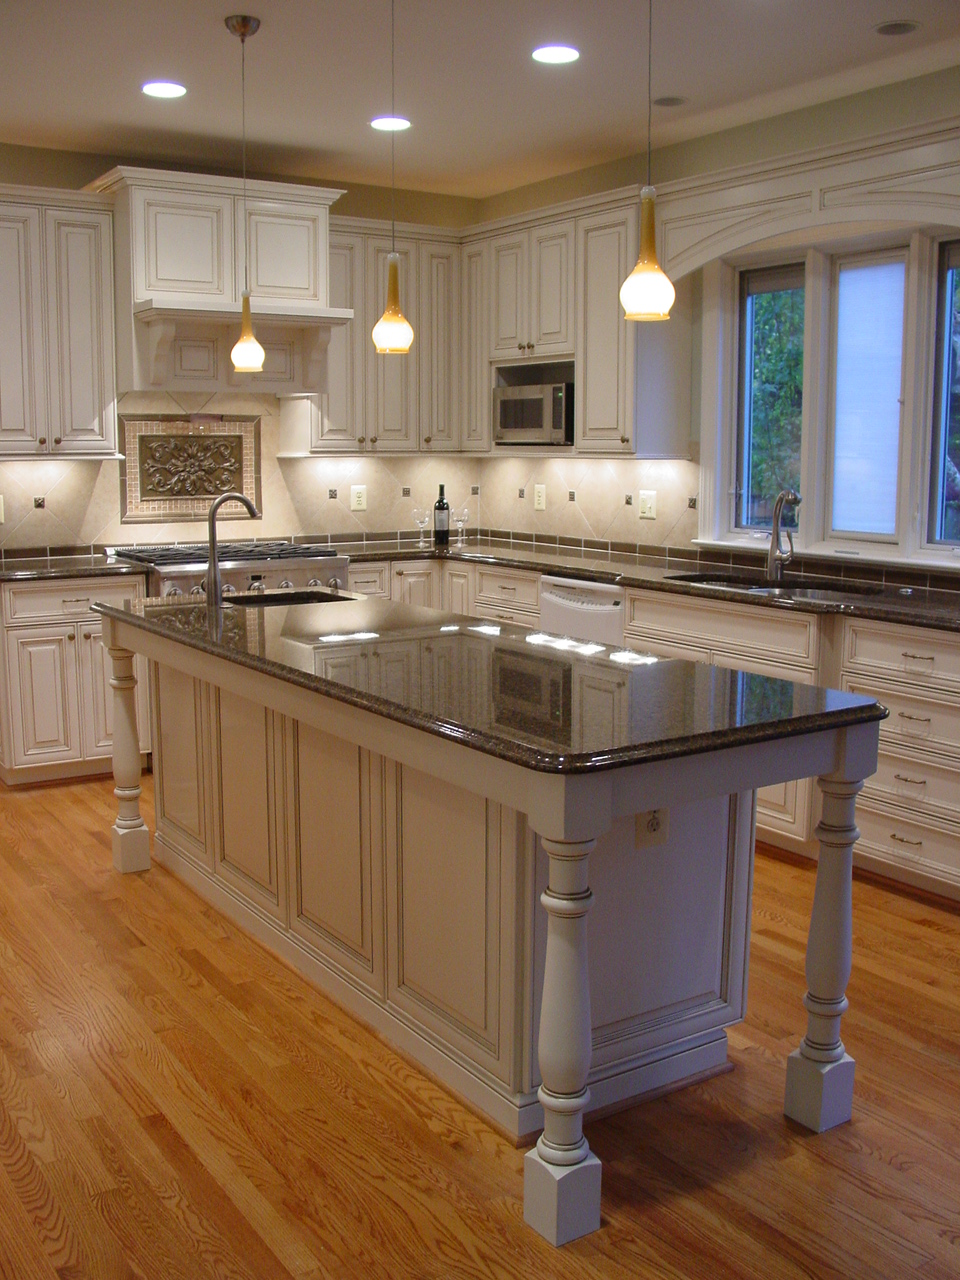 kitchen trends cabinet discounters latest kitchen trends latest kitchen trends filmesonline